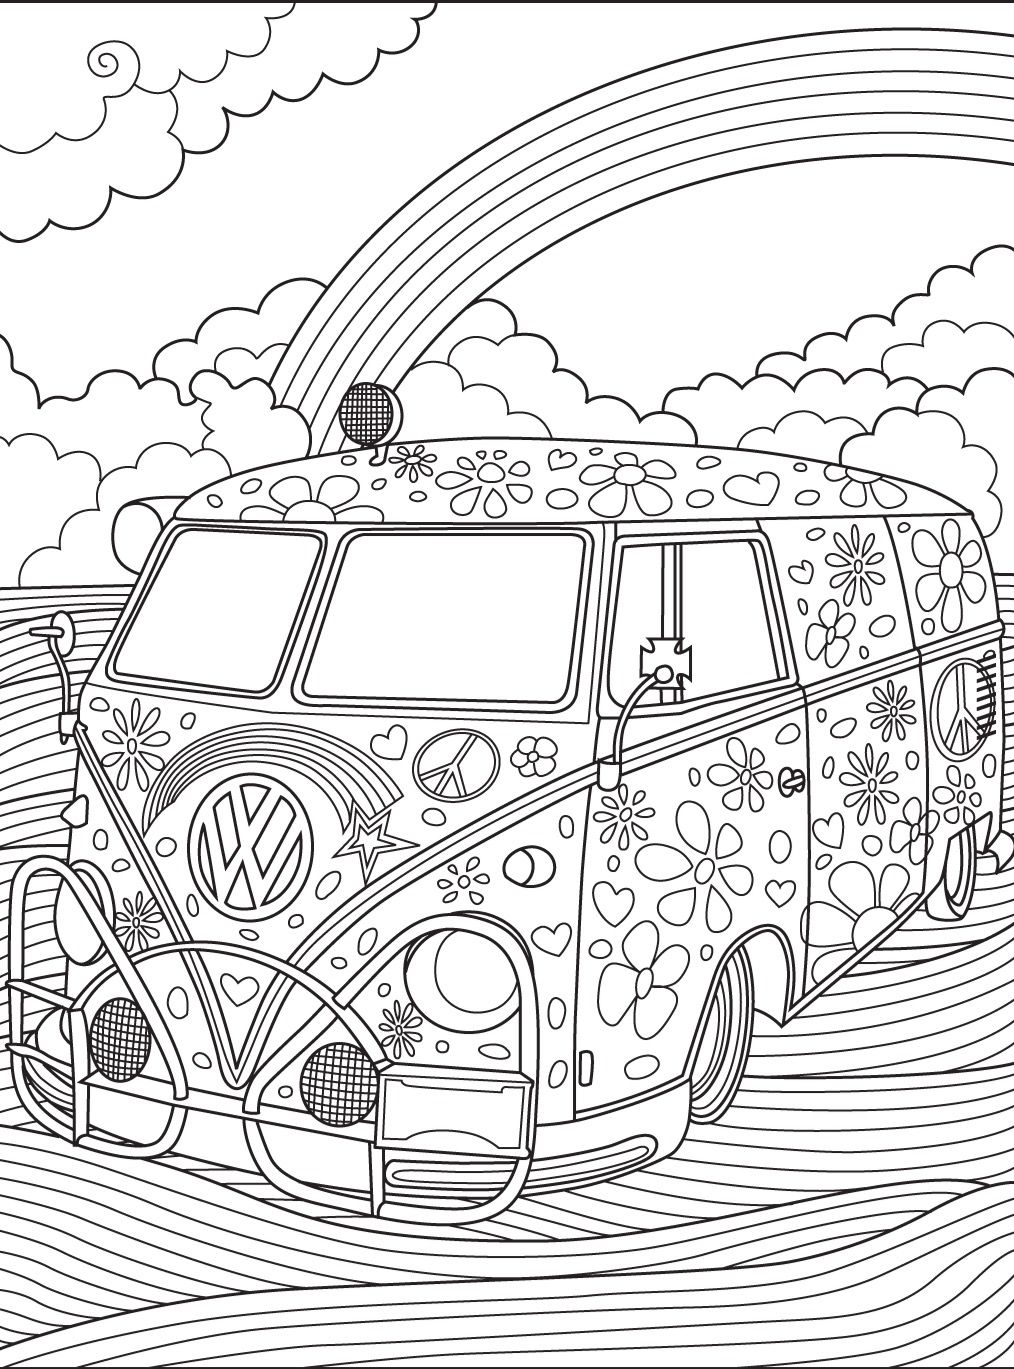 VW Kombi Coloringpage